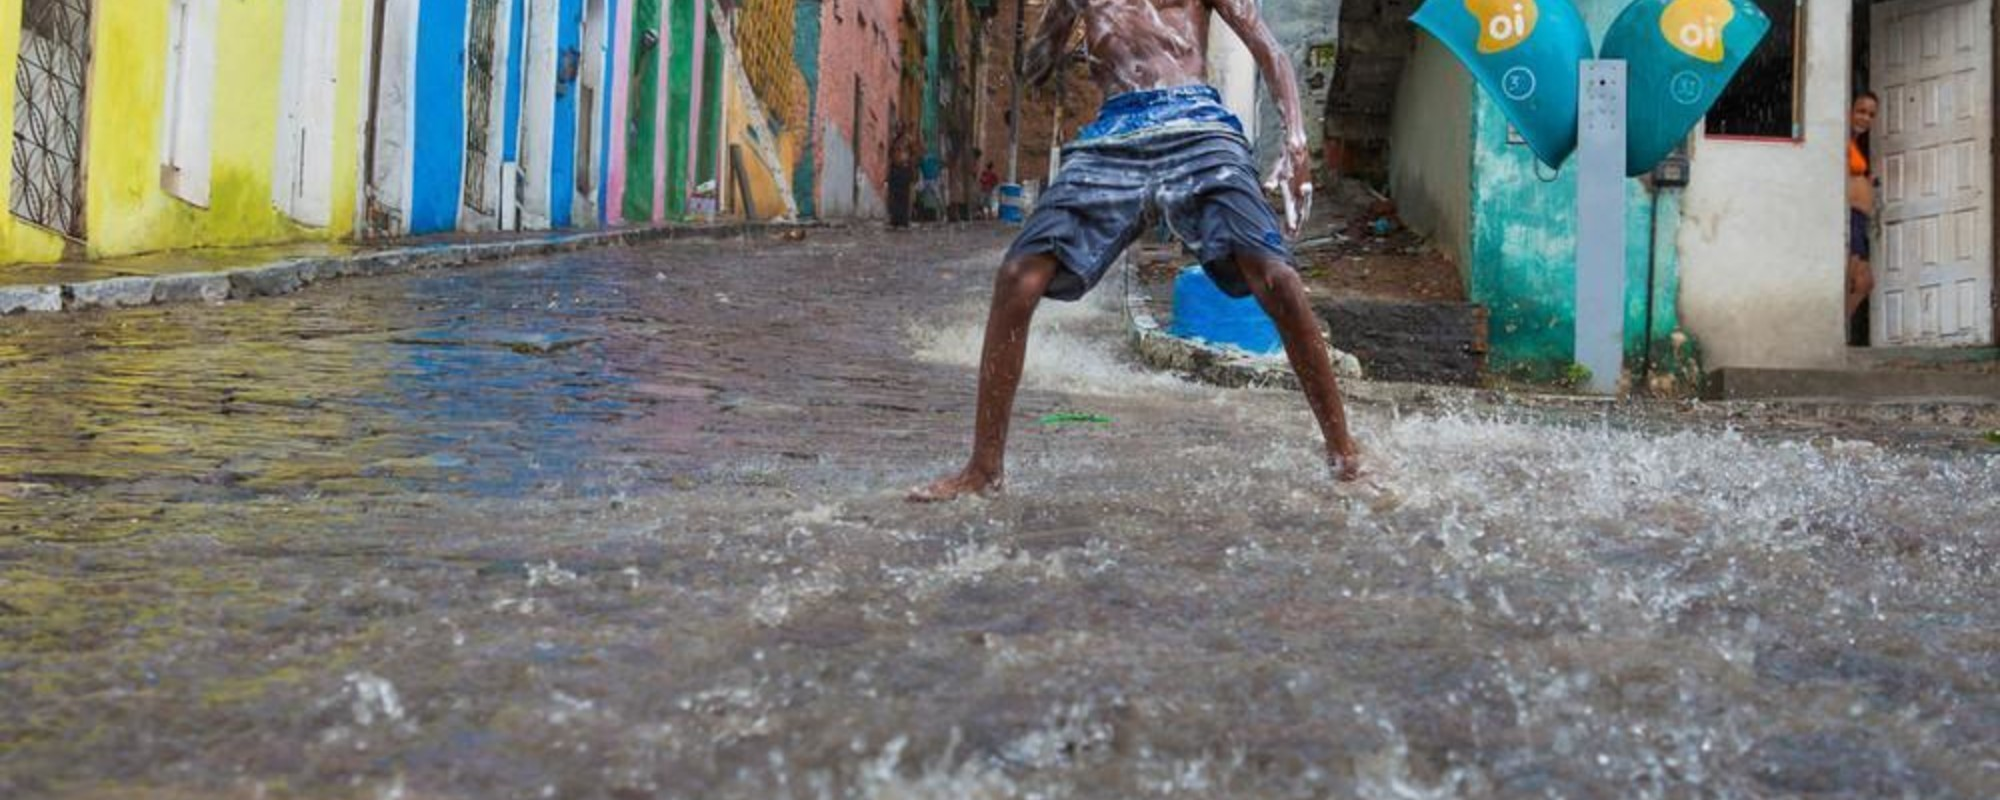 Photos of Fire, Rain, and Dance on the Streets of Salvador